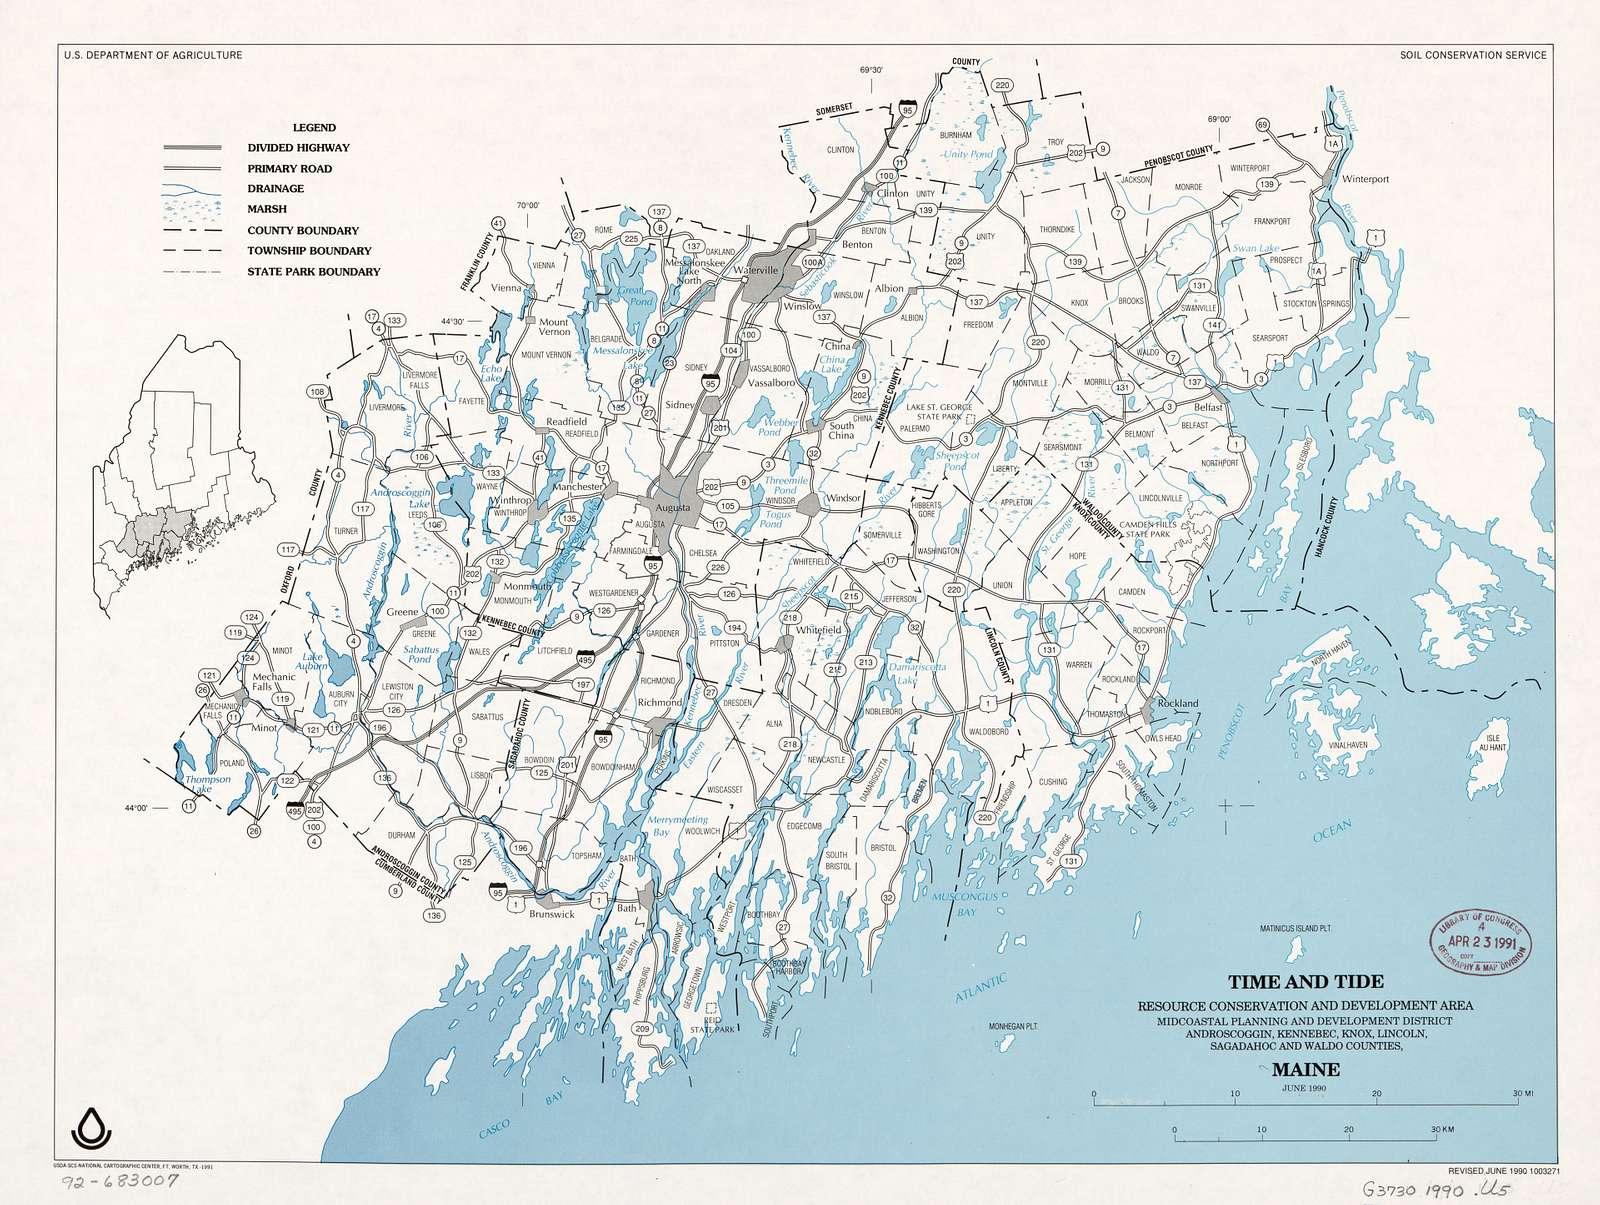 Time and Tide Resource Conservation and Development Area, Midcoastal Planning and Development District, Androscoggin, Kennebec, Knox, Lincoln, Sagadahoc, and Waldo counties, Maine : June 1990 /